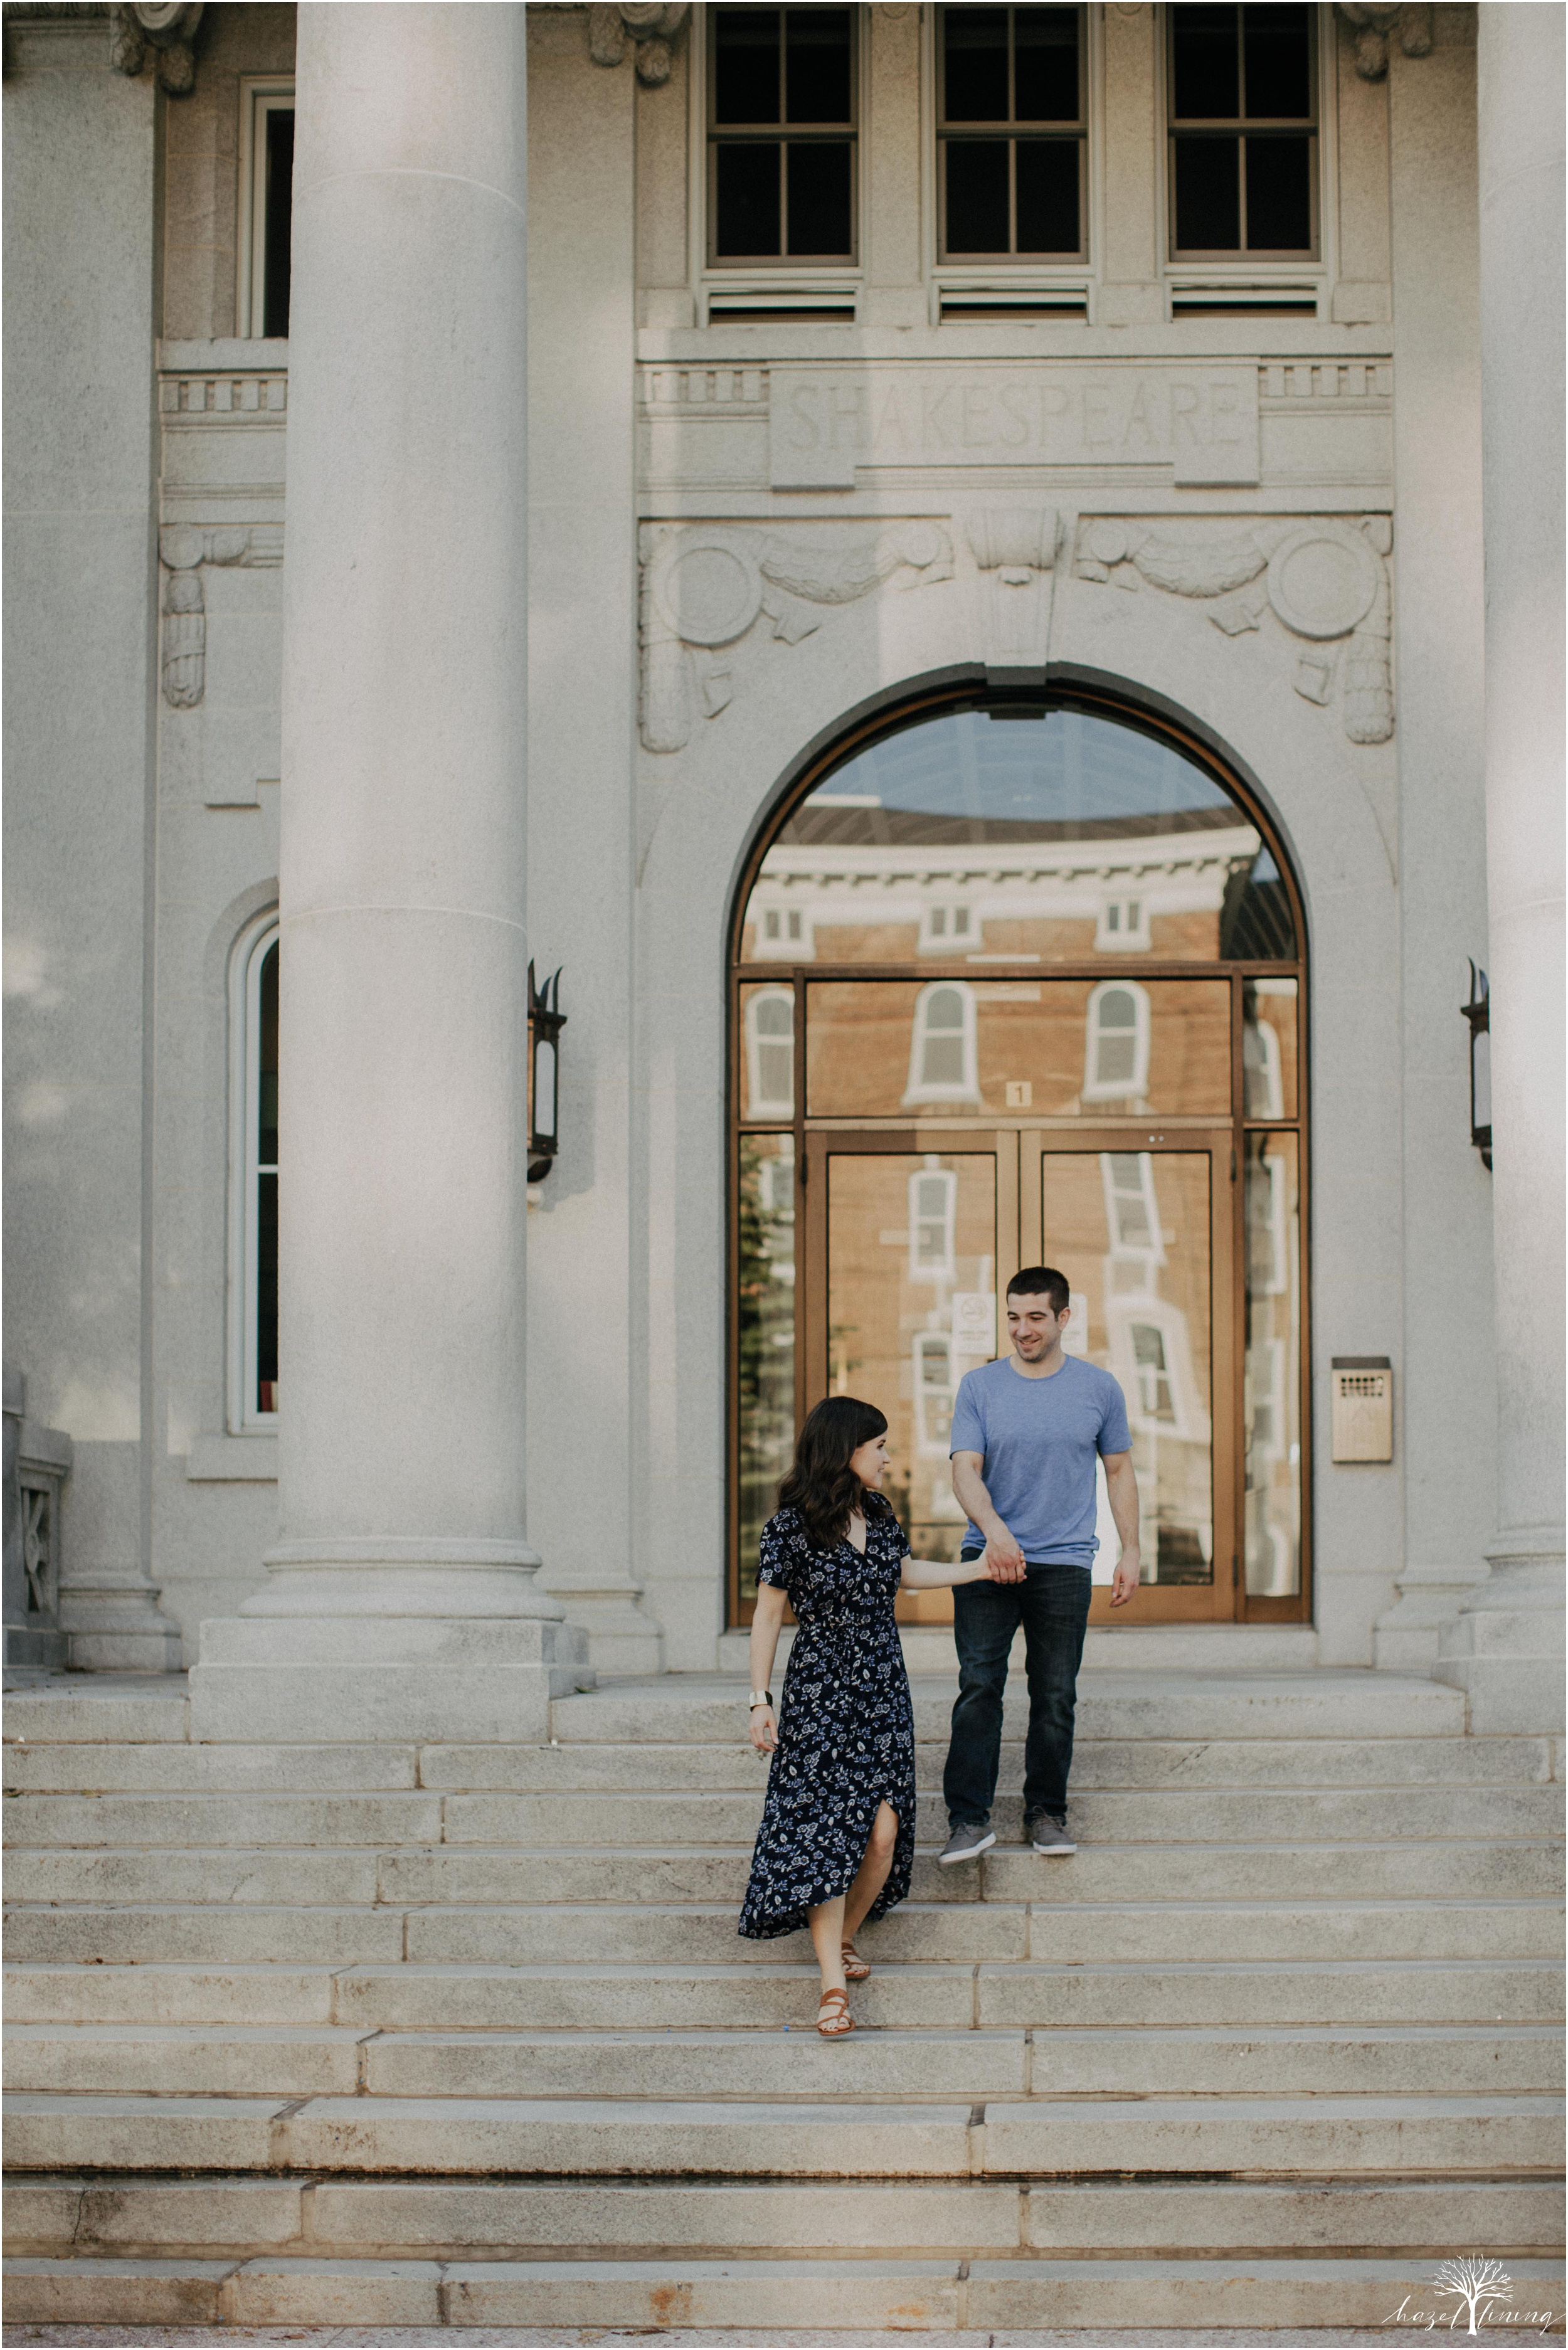 ellyn-jack-kutztown-university-of-pennsylvania-engagement-session-hazel-lining-photography-destination-elopement-wedding-engagement-photography_0233.jpg